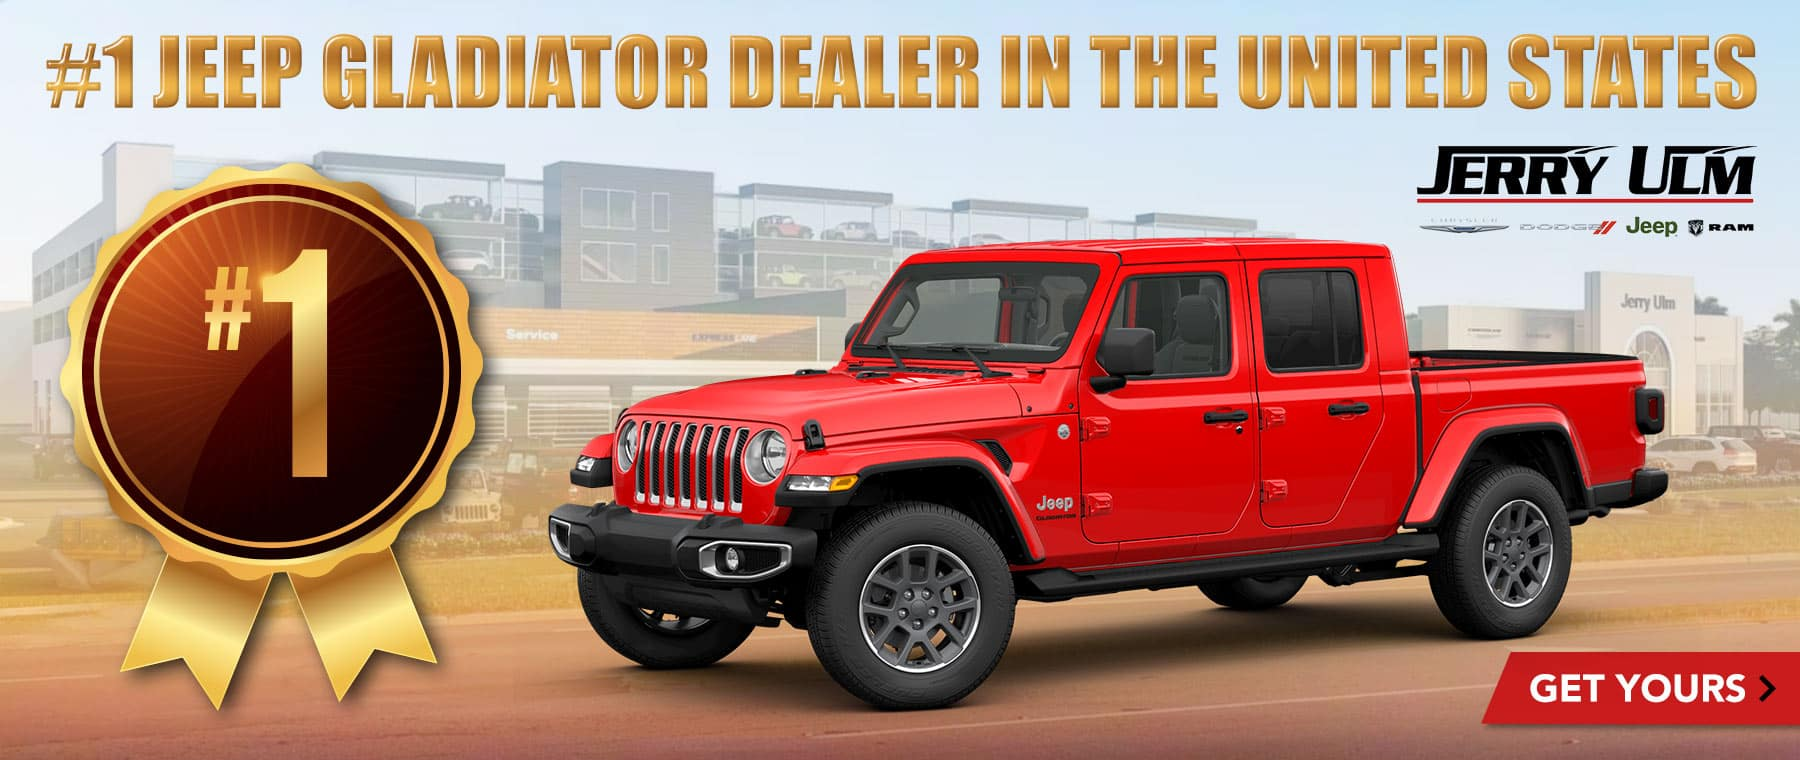 Jerry Ulm Is The #1 Jeep Gladiator Dealership